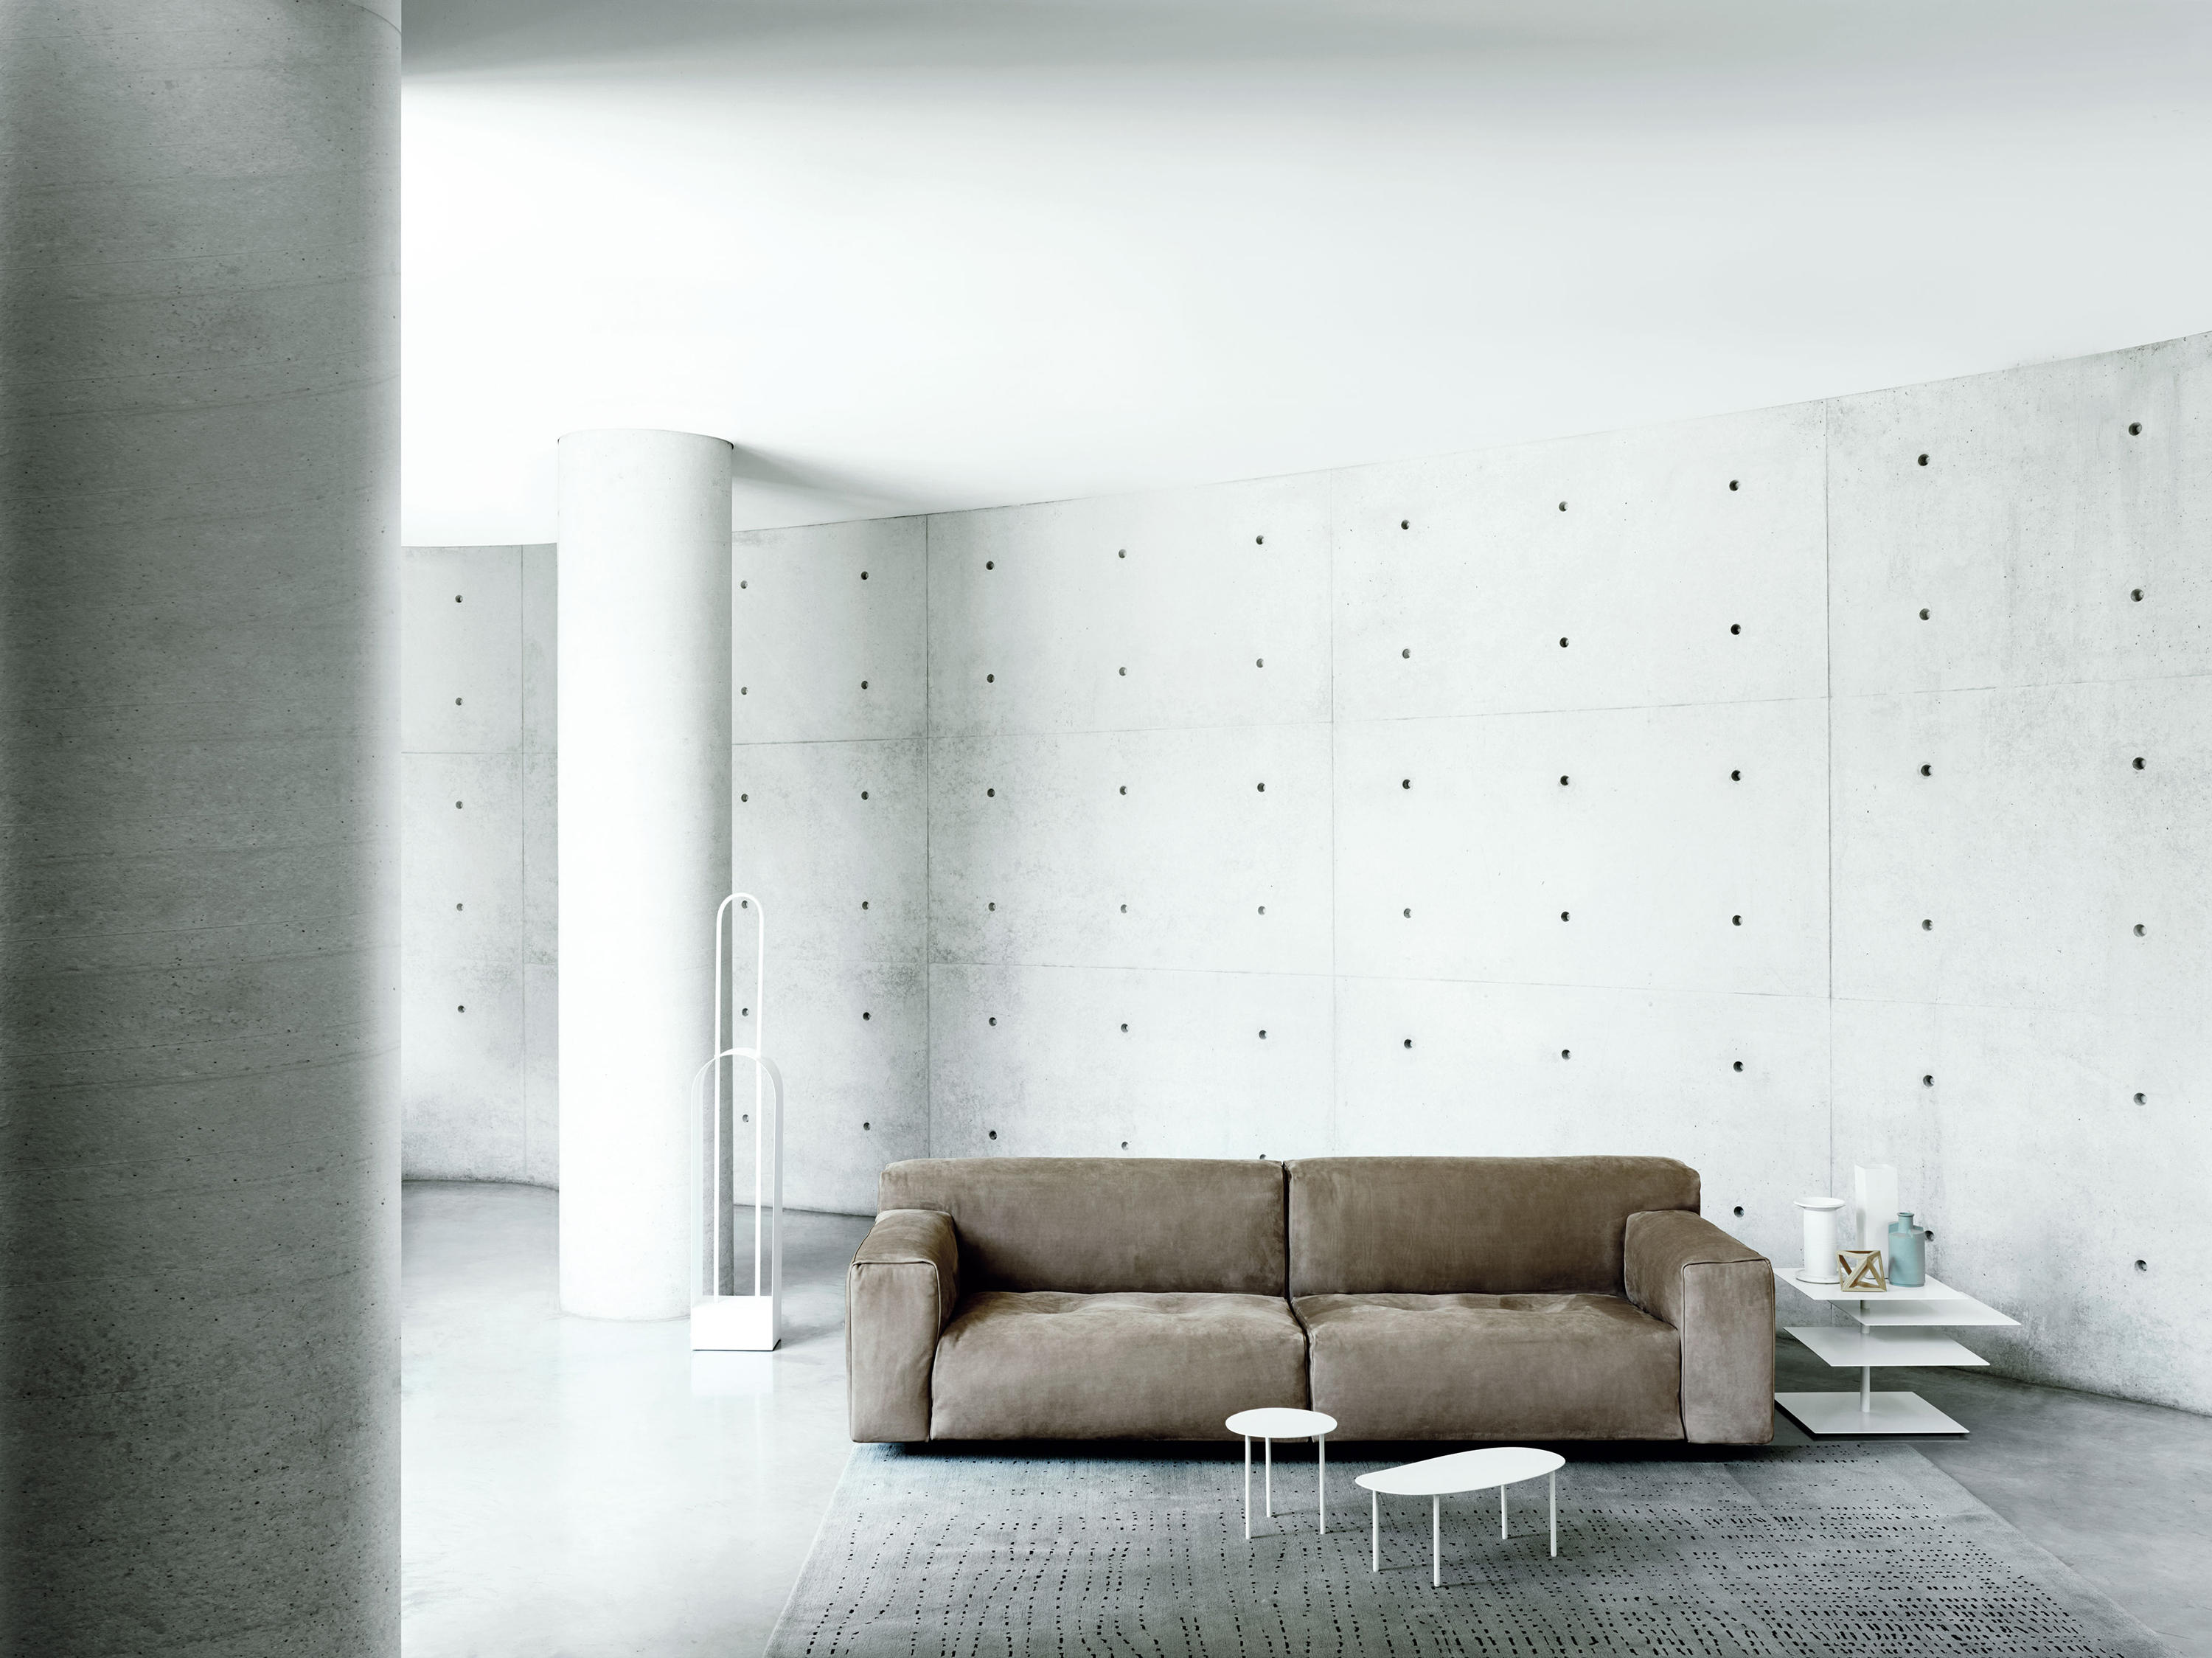 Softwall sofas from living divani architonic for Living divani softwall